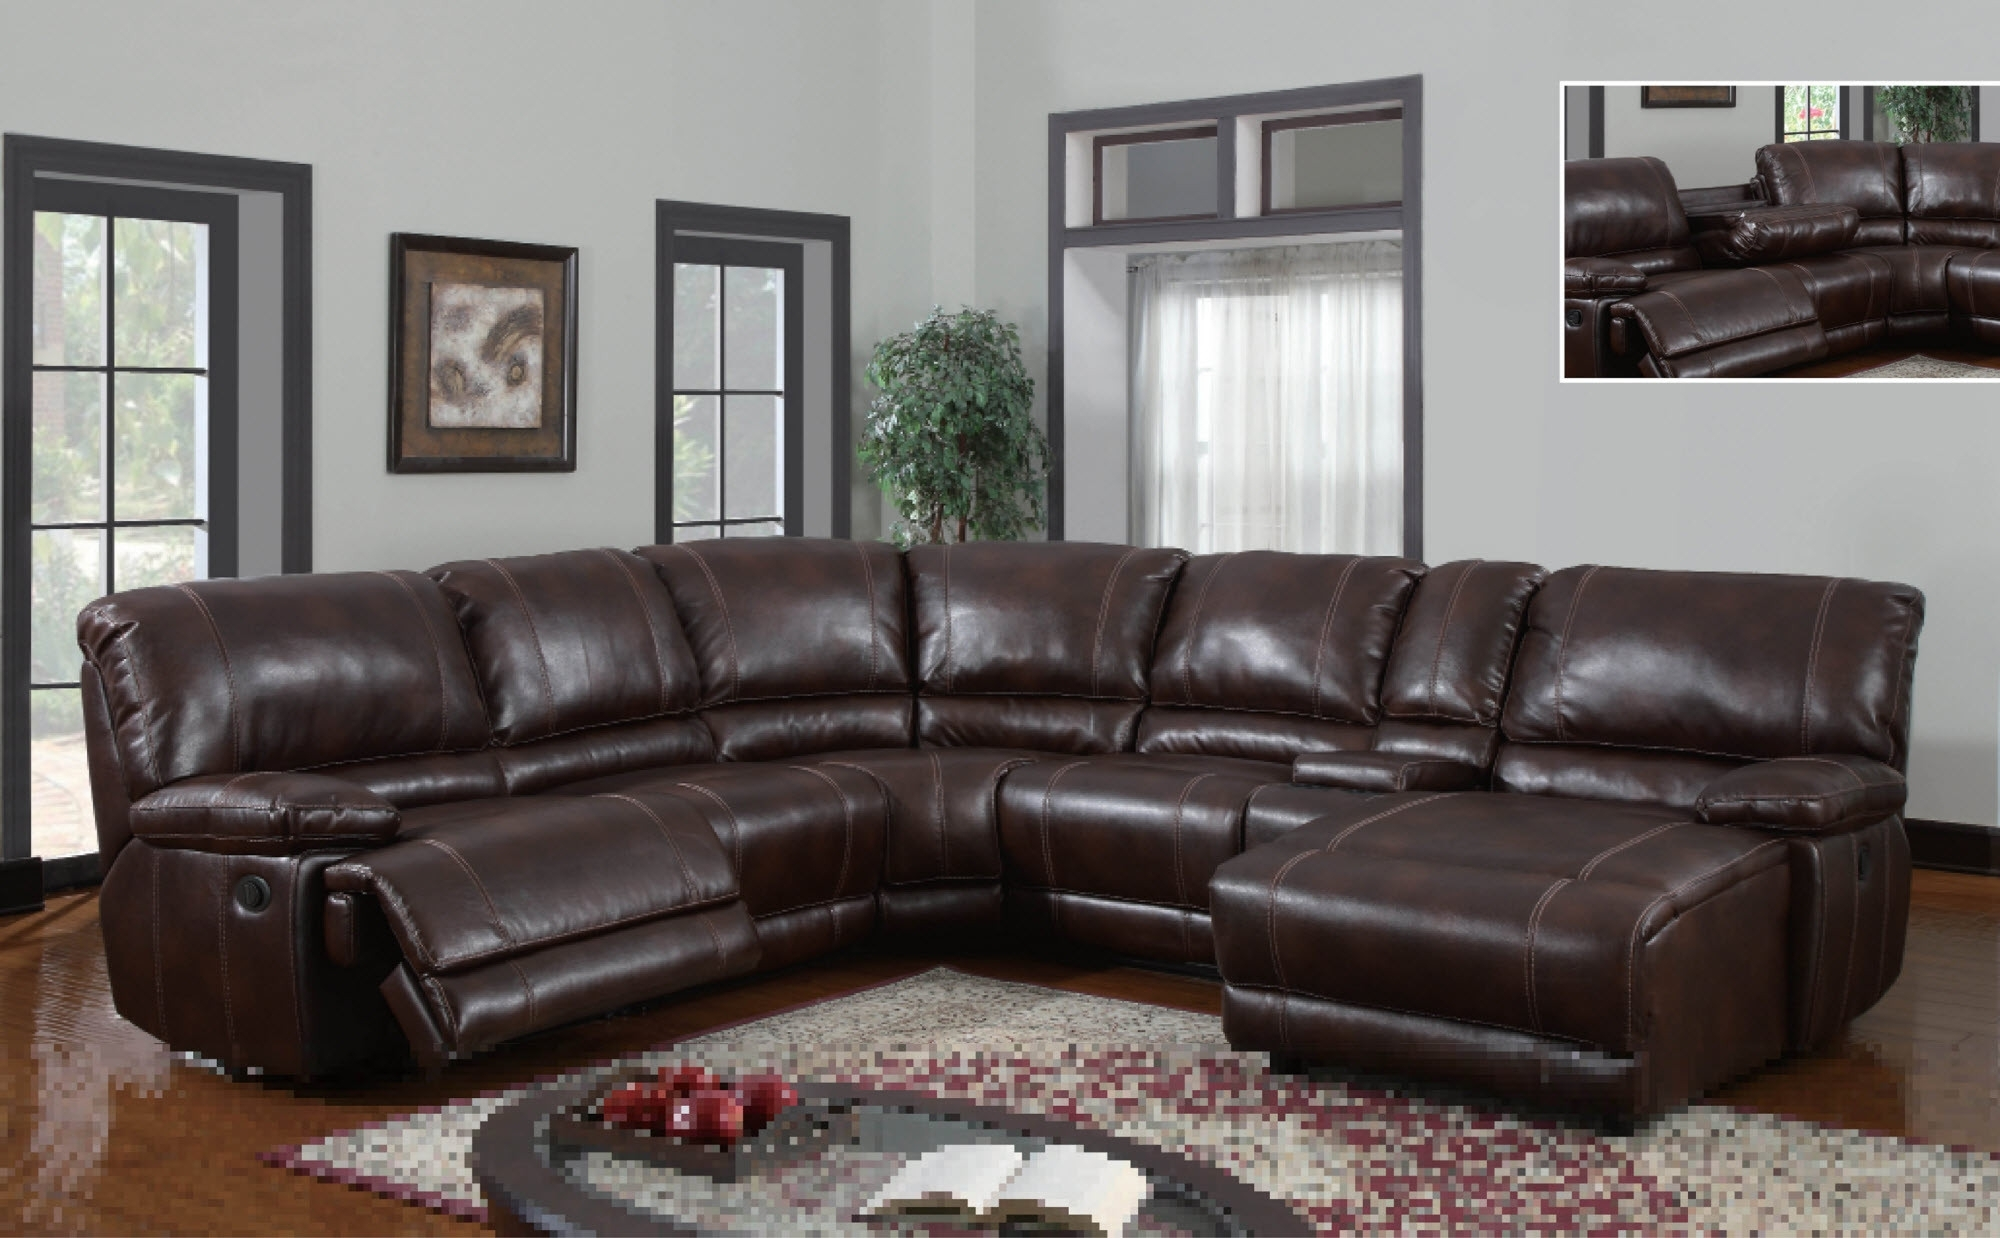 Conns Furniture El Paso Tx Luxury Living Room Cheap Sectional Sofas Regarding El Paso Tx Sectional Sofas (View 7 of 10)